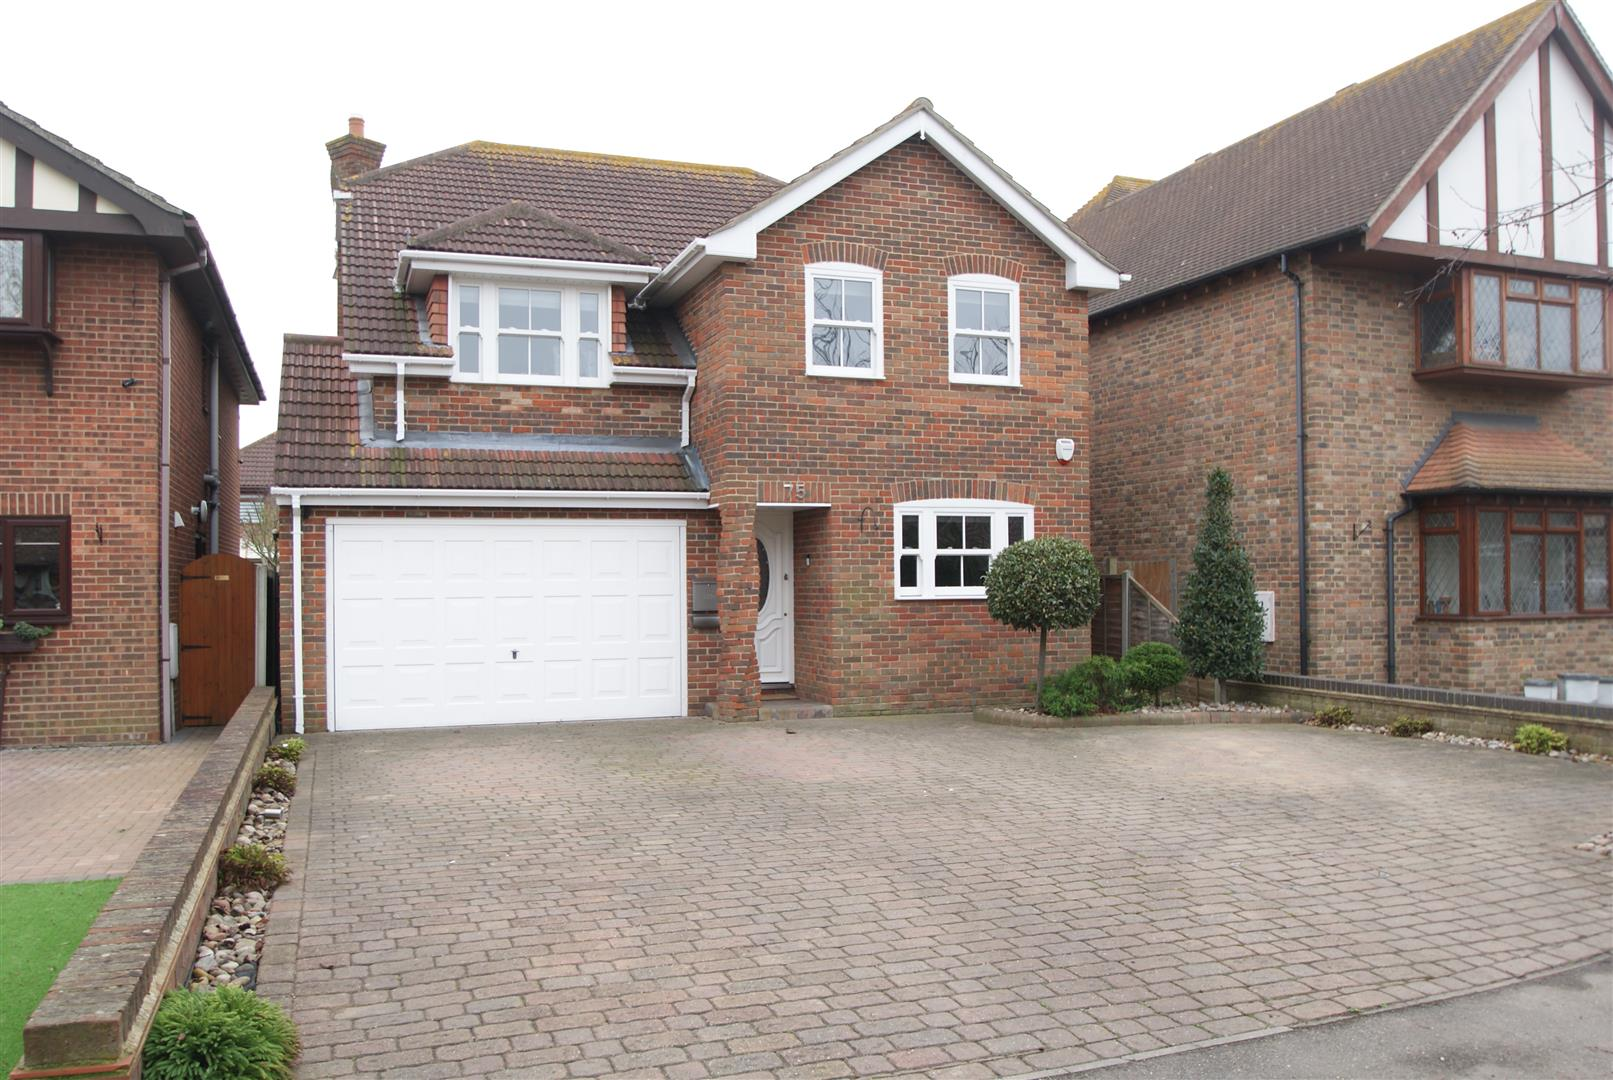 Papenburg Road, Canvey Island – For Sale